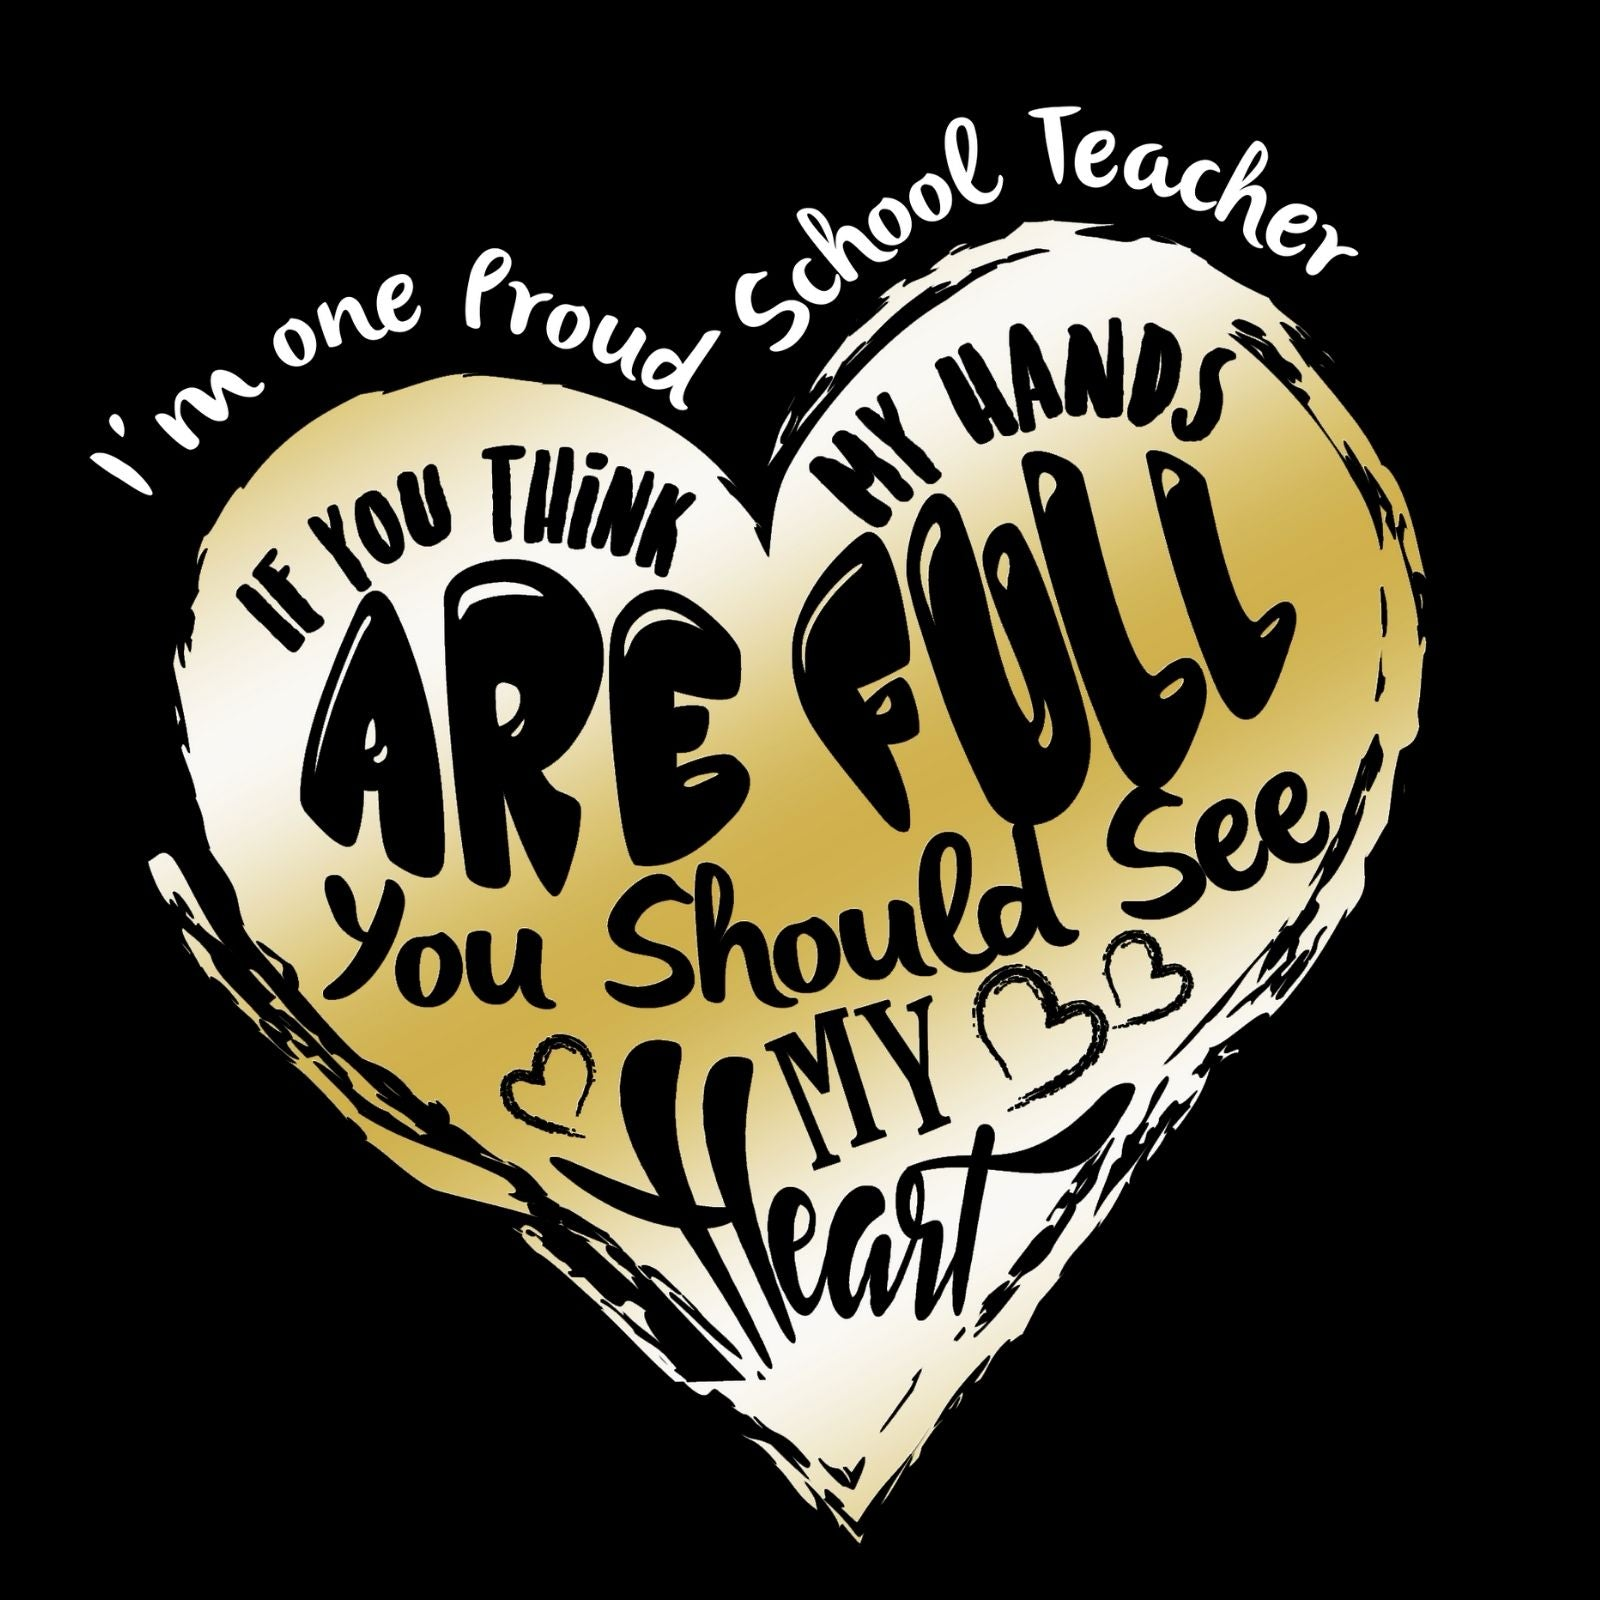 I'm A Proud School Teacher. If You Think My Hands Are Full You Should See My Heart. - Bastard Graphics